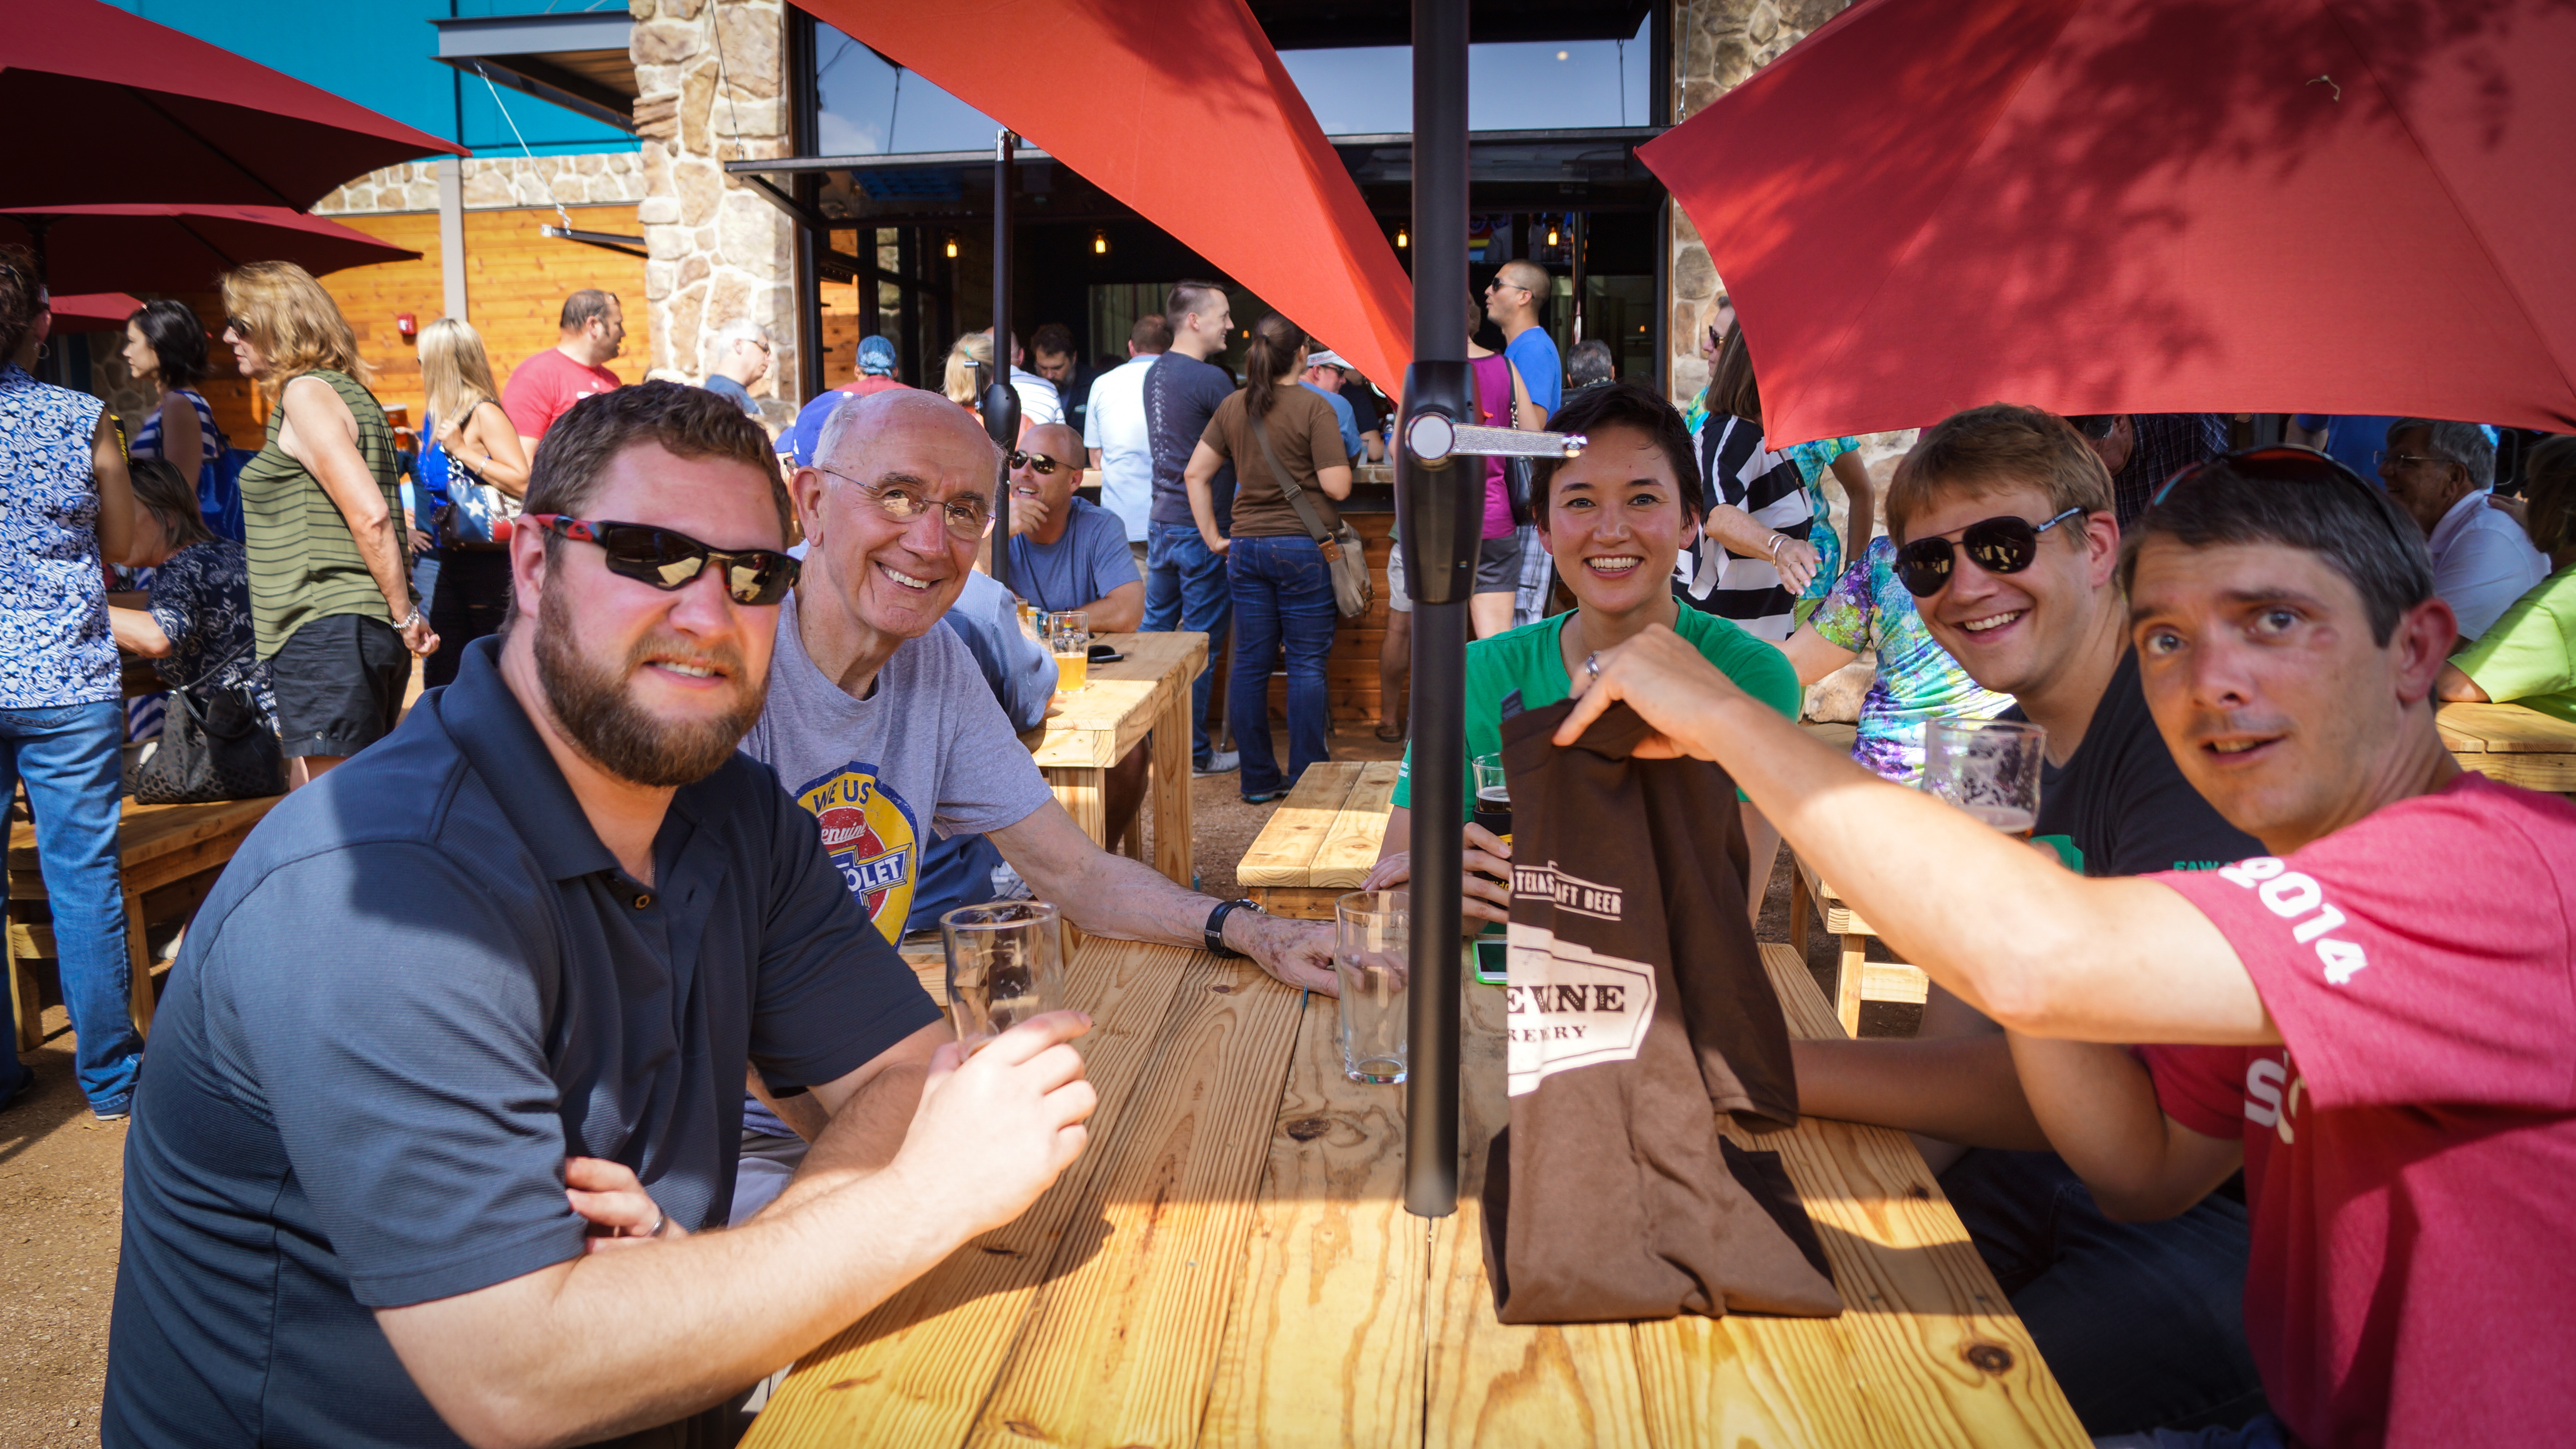 Say Cheers at Grapevine Craft Brewery